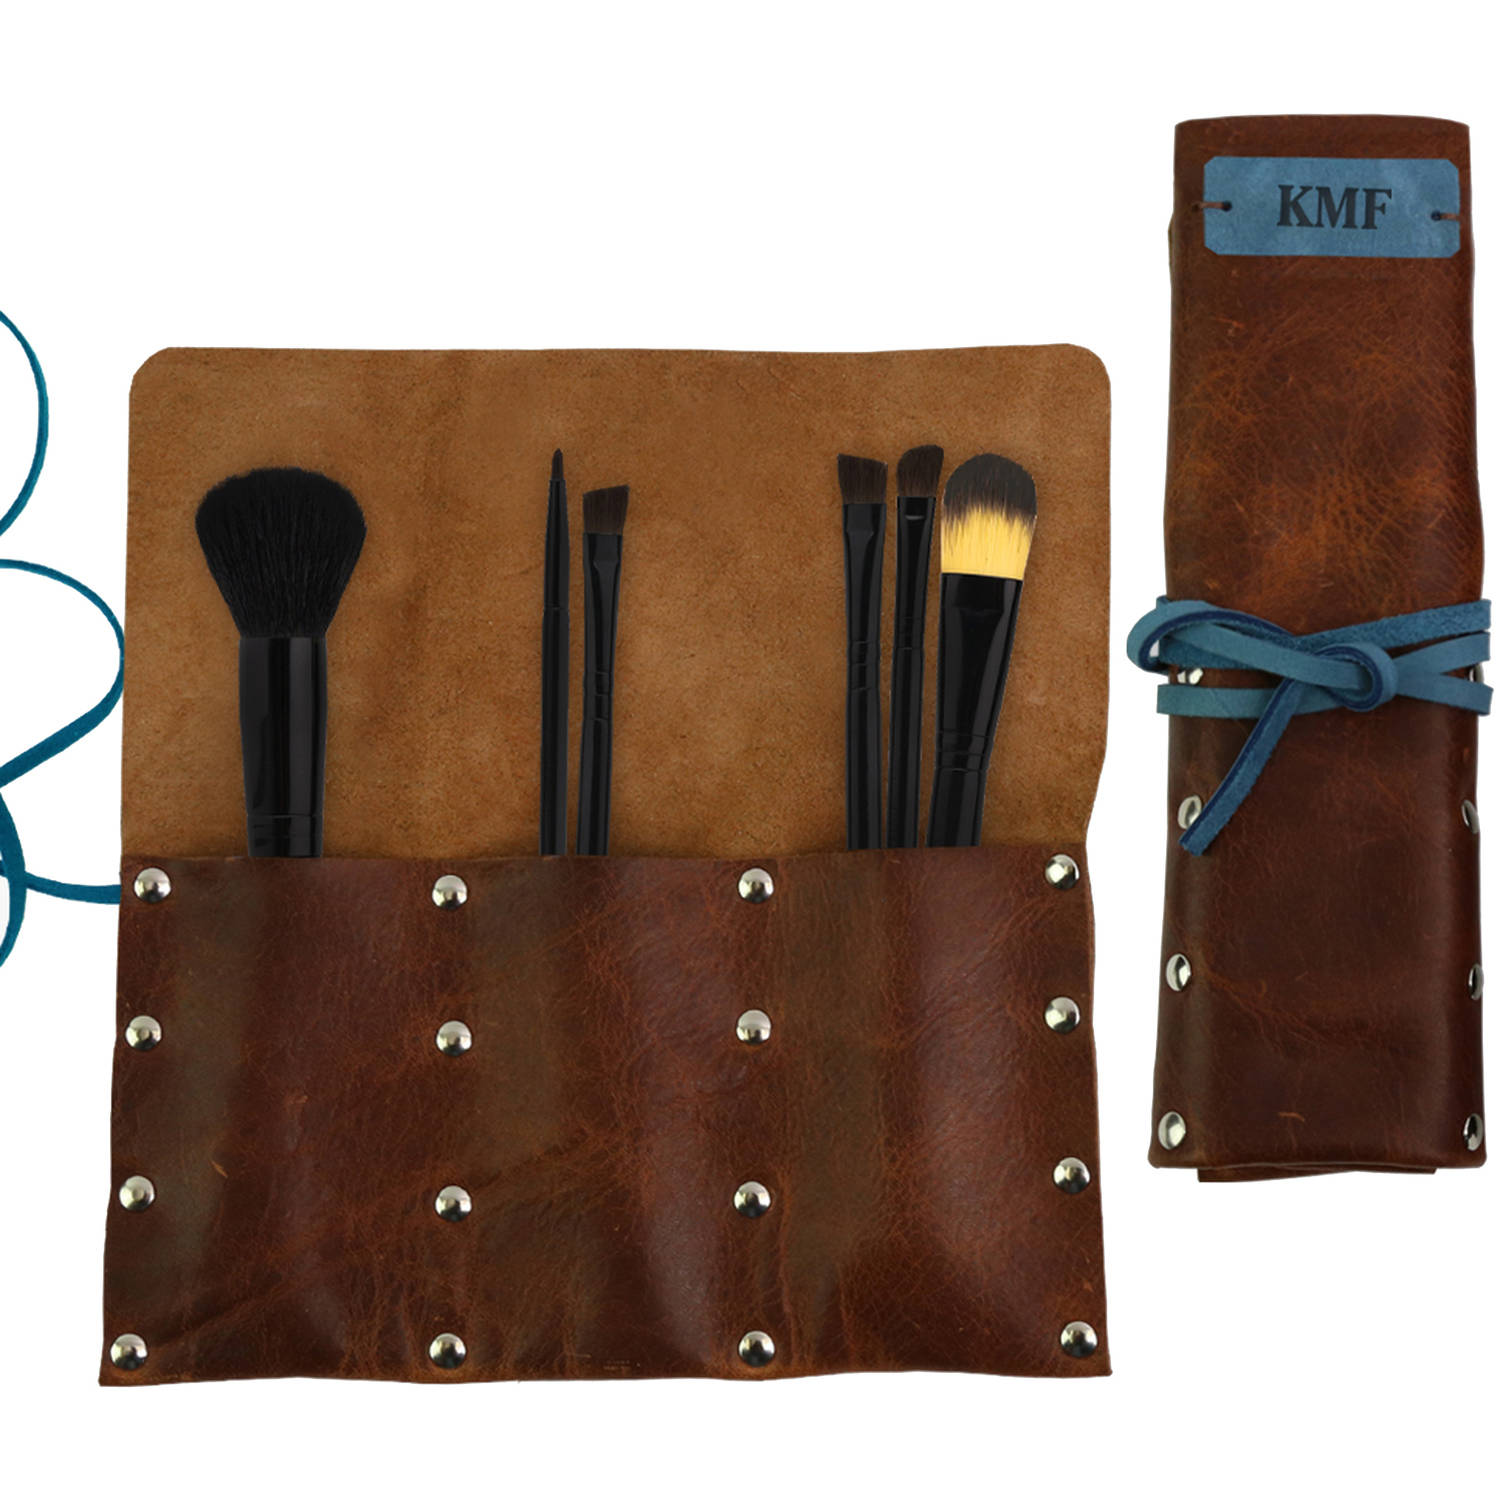 "Monogram Contrast Leather Wrap Makeup Brush Holder Organizer 9"" x 7.75"""